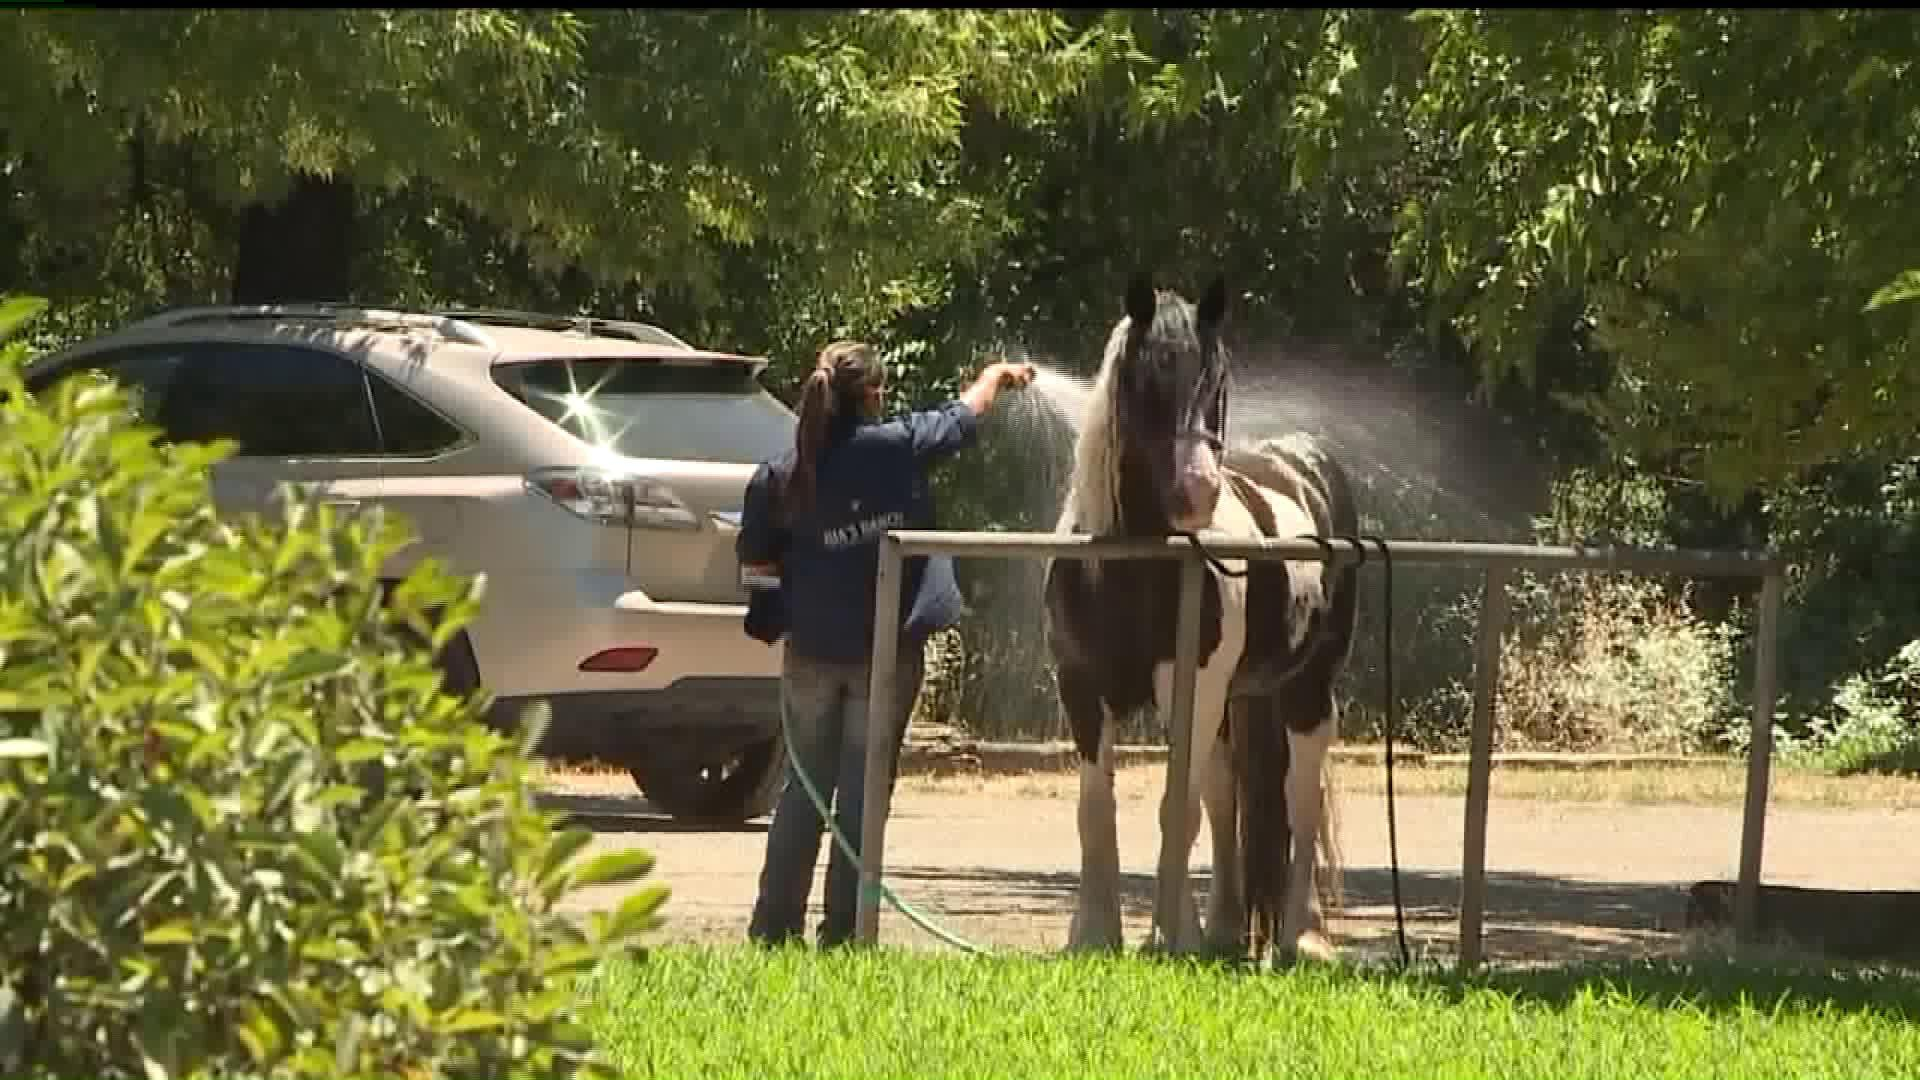 California County Considers Adding 'Horse Parking'